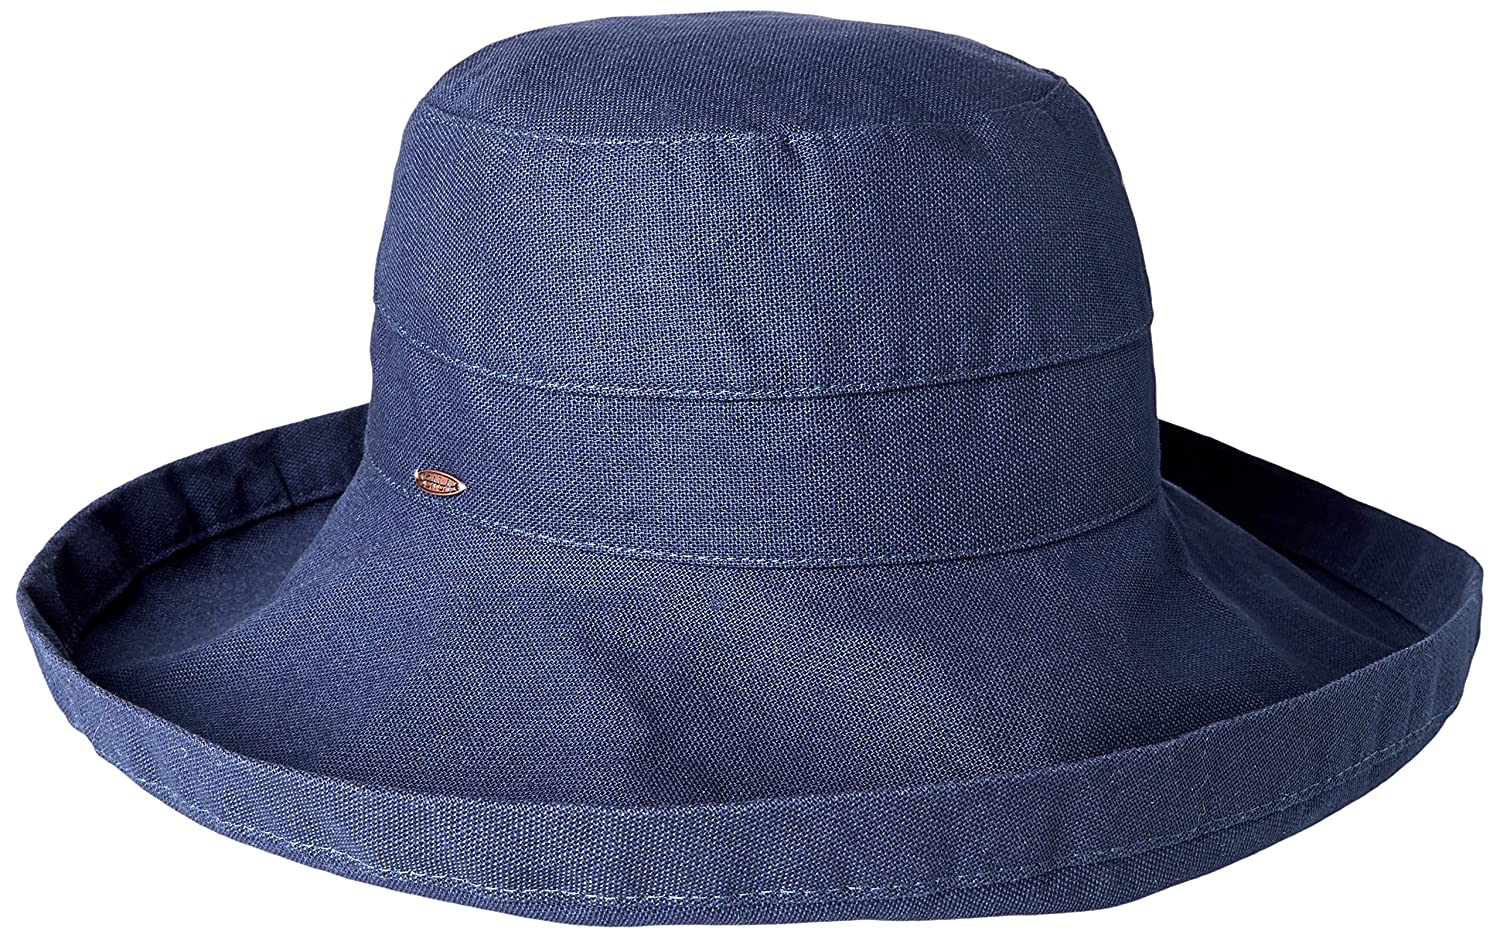 9214ed8c Dorfman Pacific Women's Summer Sun Hat (Navy) at Amazon Women's Clothing  store: Scala Hats